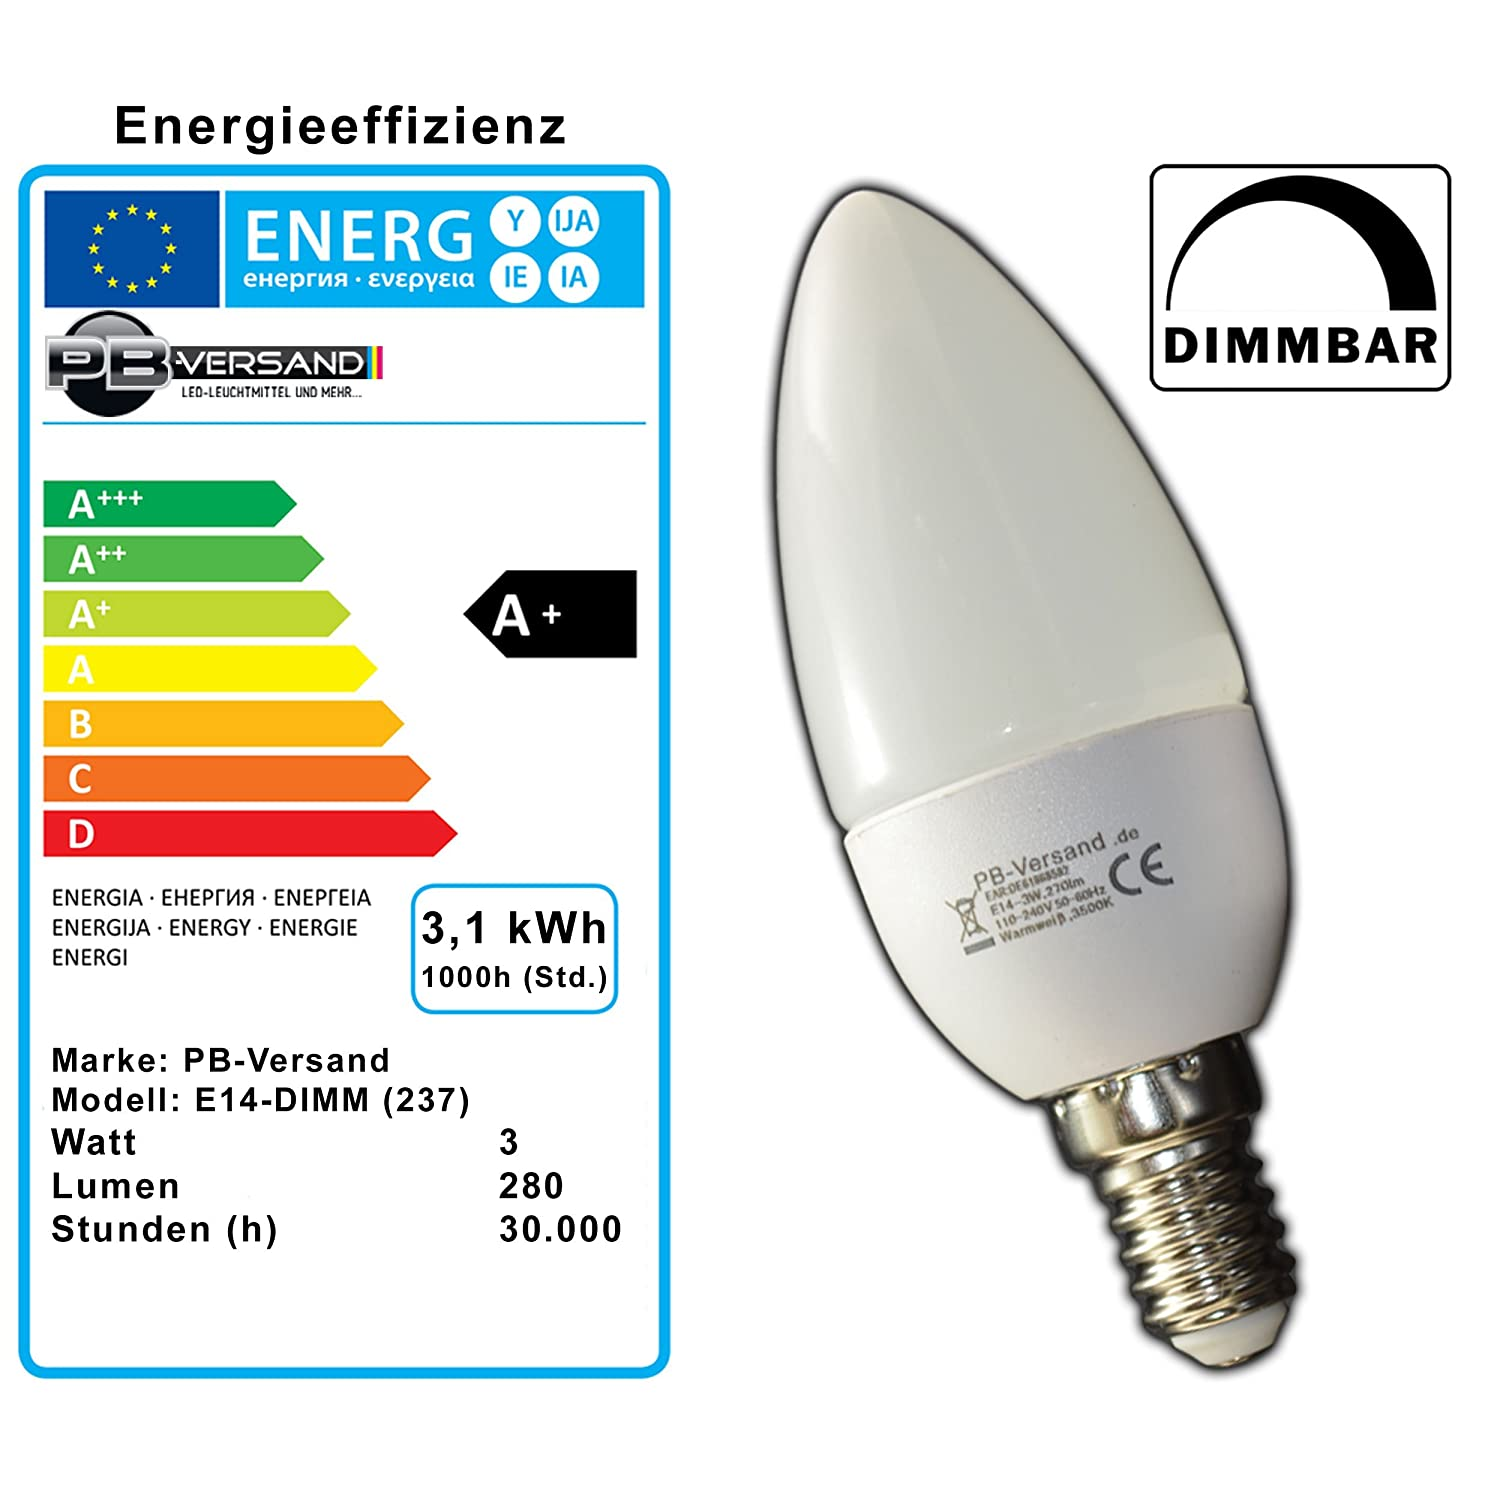 Pack of 3x e14 led candle light bulb 3 watt candle light bulb pack of 3x e14 led candle light bulb 3 watt candle light bulb energy saving warm white lamp bulb spotlight for dimmer amazon kitchen home parisarafo Gallery